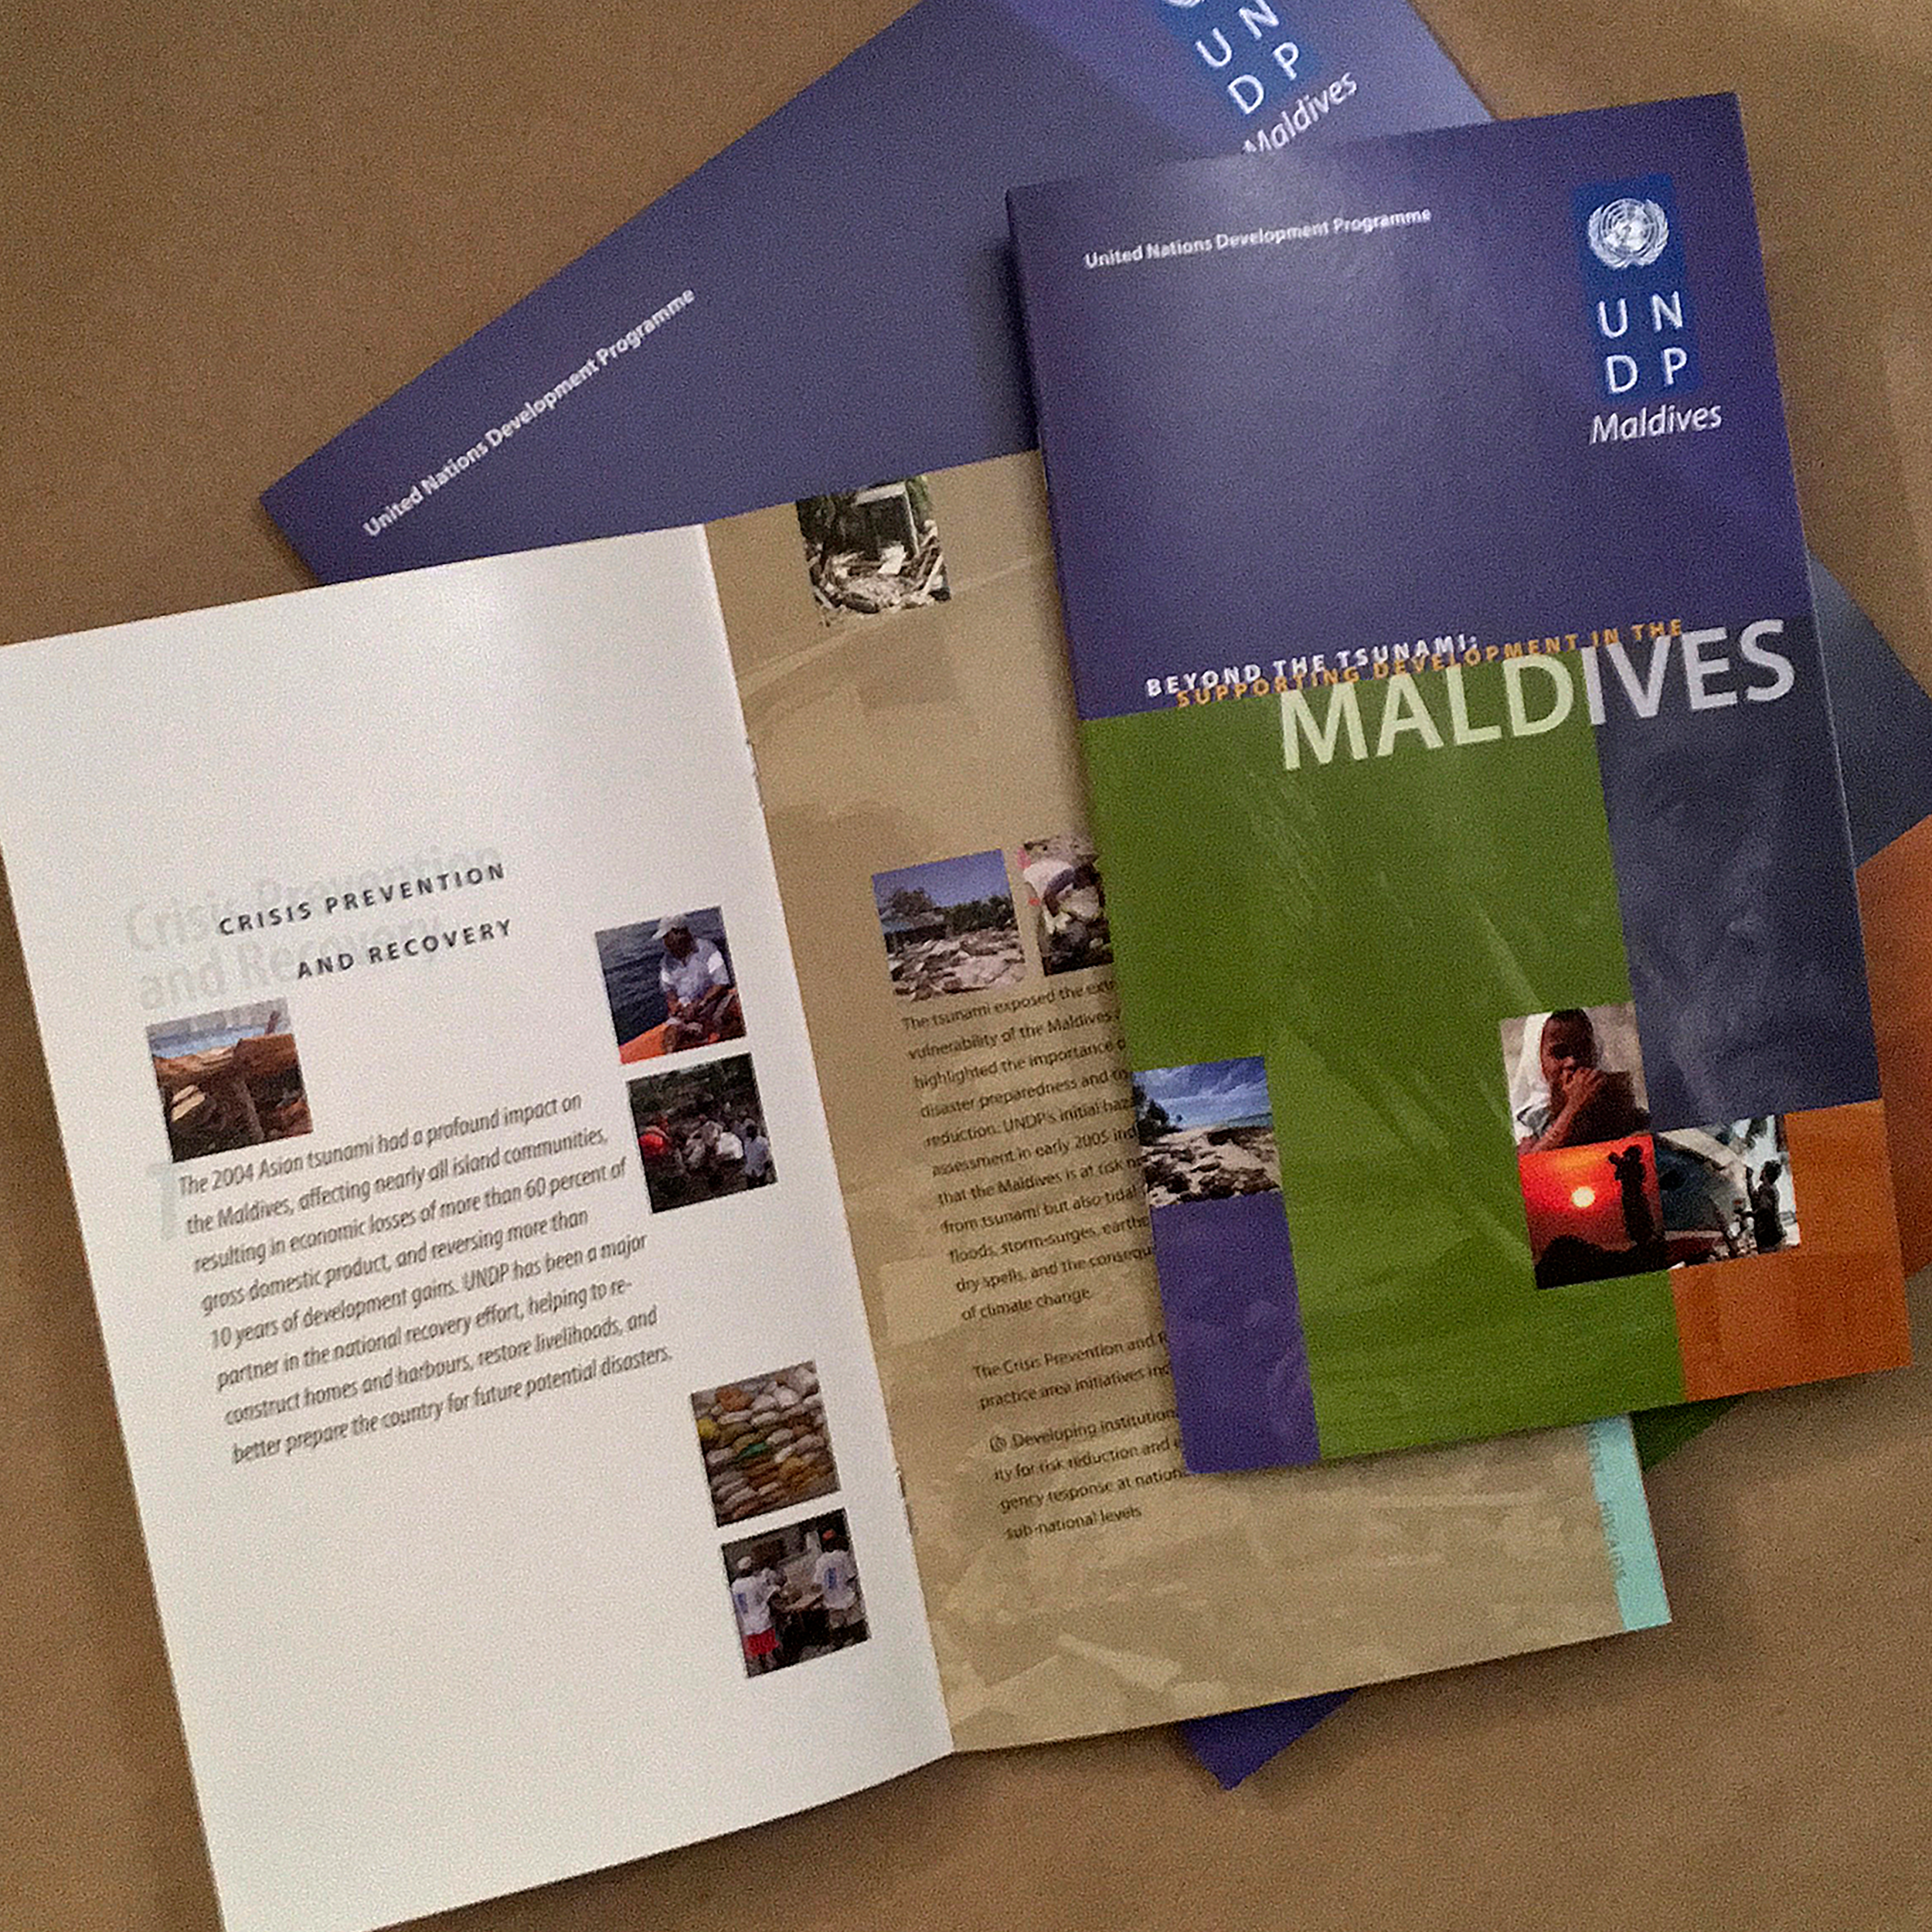 United Nations Development Program   In support of the Maldives, a summary communications package was requested as recovery is well on its way after the 2004 Tsunami.